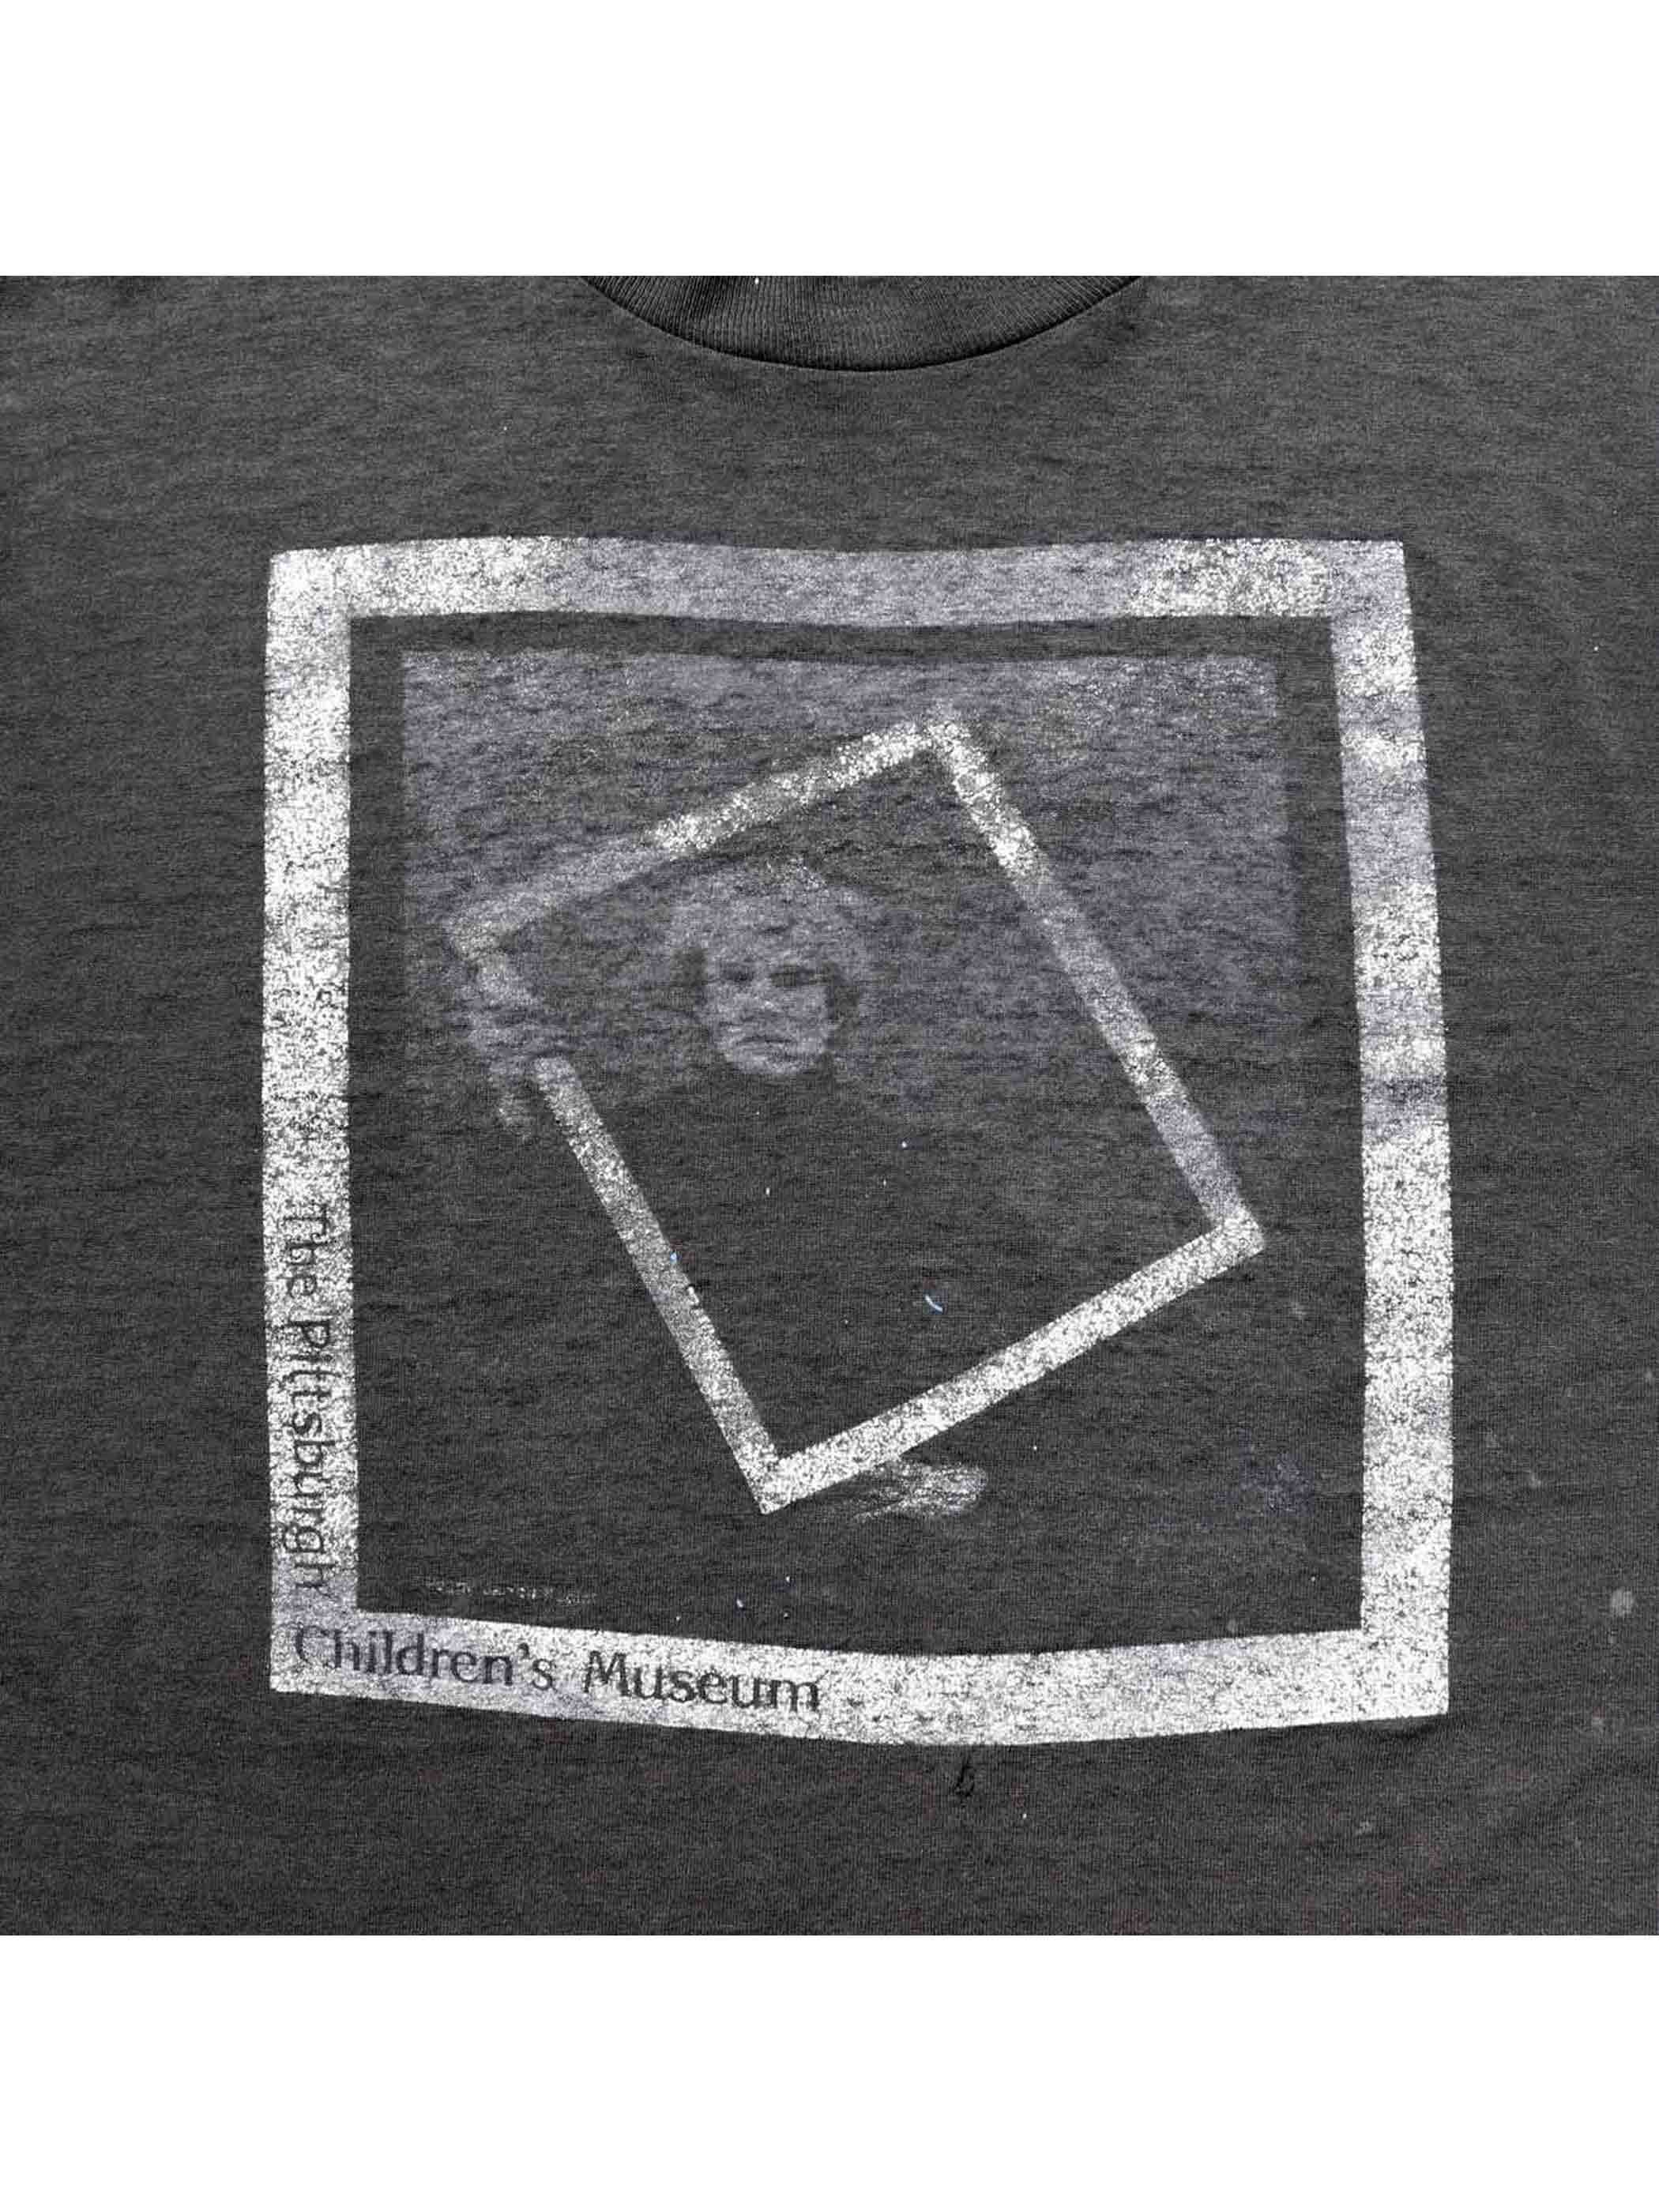 """80's ANDY WARHOL """"THE PITTSBURGH CHILDREN'S MUSEUM"""" Tシャツ [About M]"""